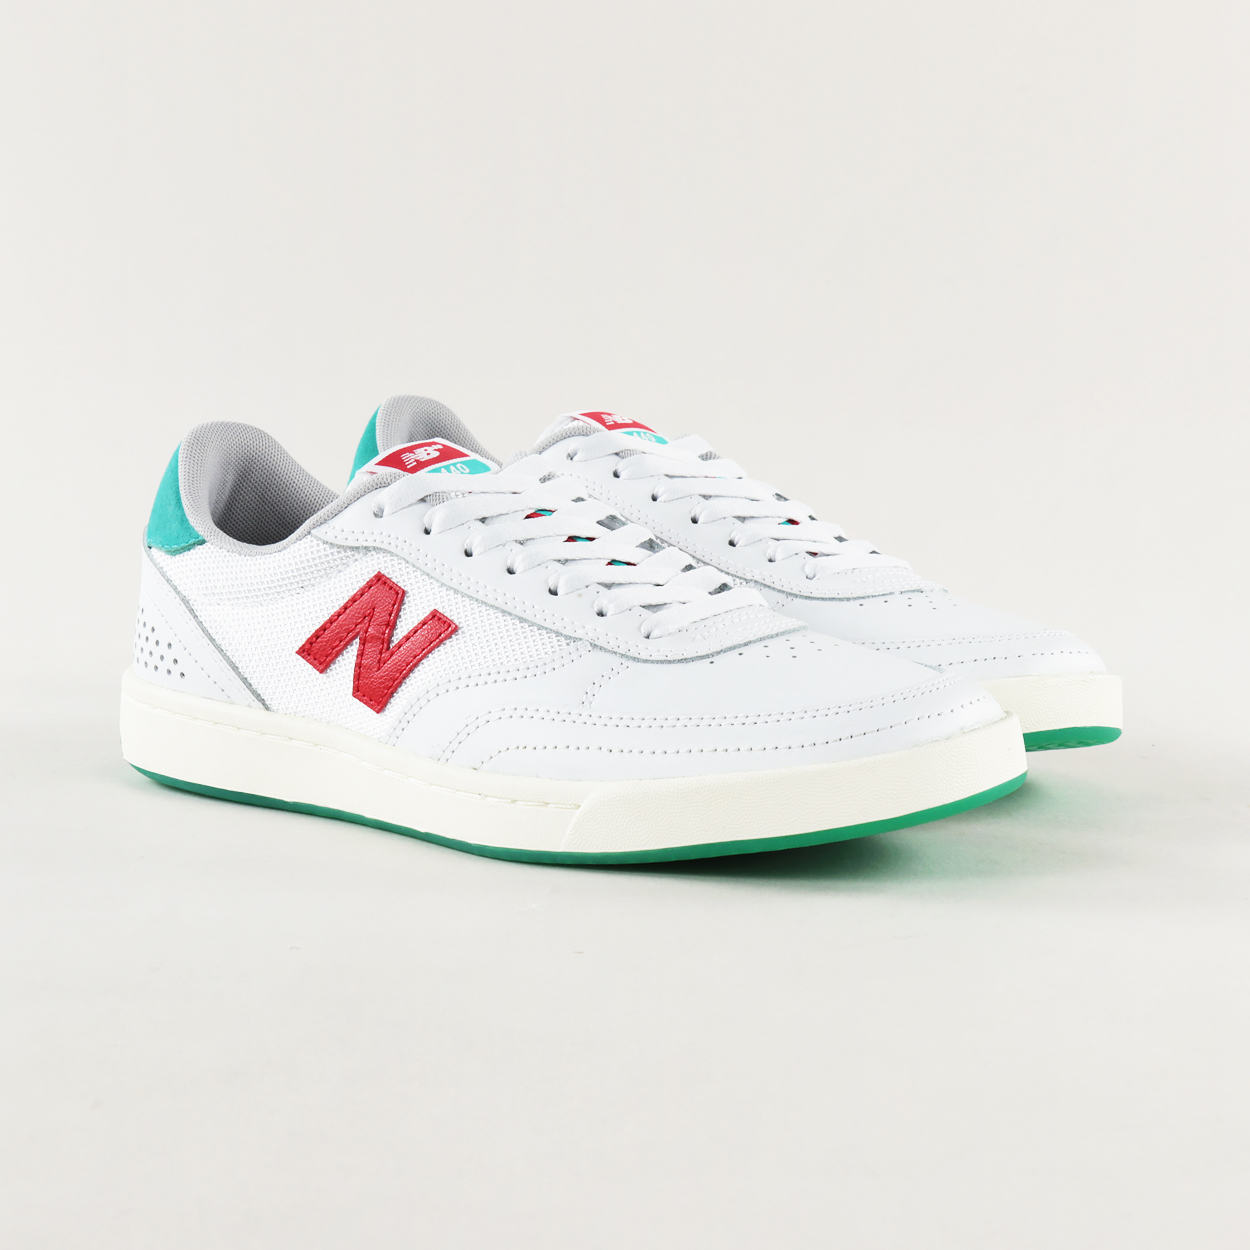 New Balance Numeric 440 Shoes White Red